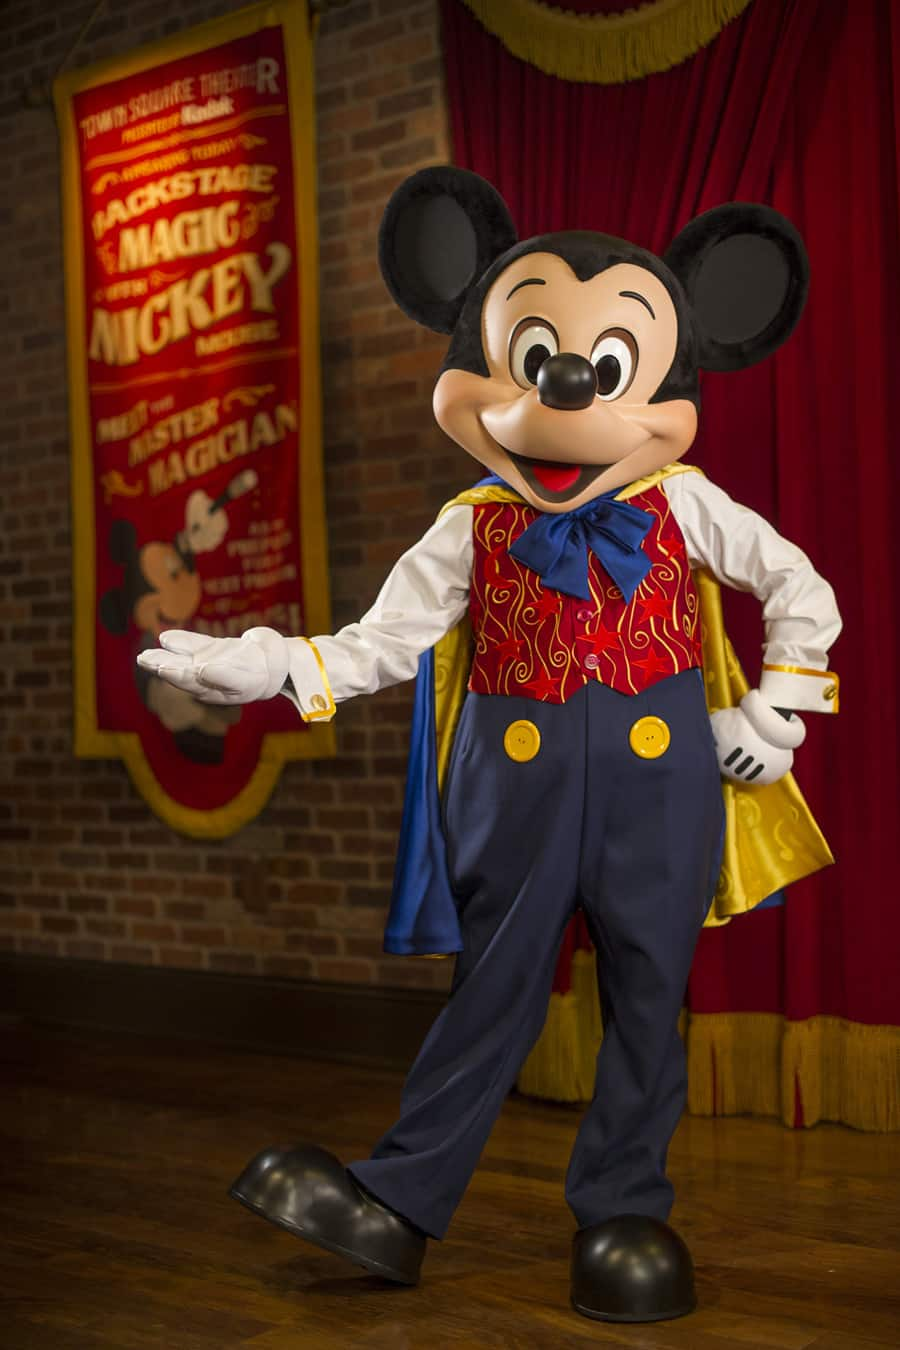 Meeting magician mickey mouse at town square theater in magic magician mickey mouse at town square theater in magic kingdom park m4hsunfo